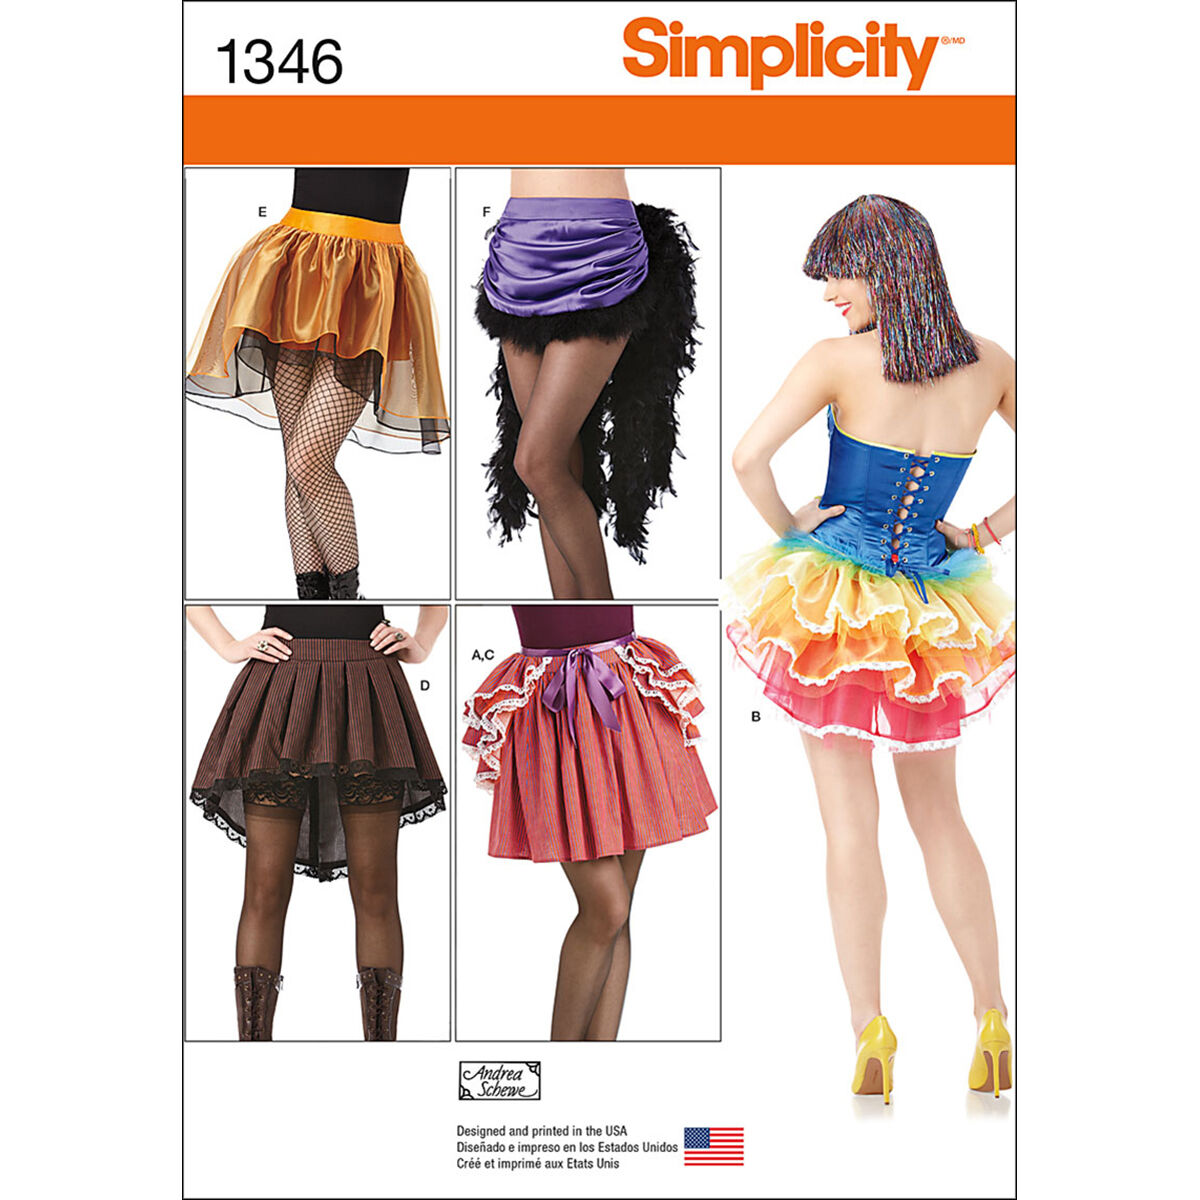 Steampunk Sewing Patterns- Dresses, Coats, Plus Sizes, Men's Patterns Simplicity - Pattern 1346 - Misses Costume Skirts and Bustles - Sizes 6-8-10-12 - Costumes - At JOANN Fabrics  Crafts $18.95 AT vintagedancer.com